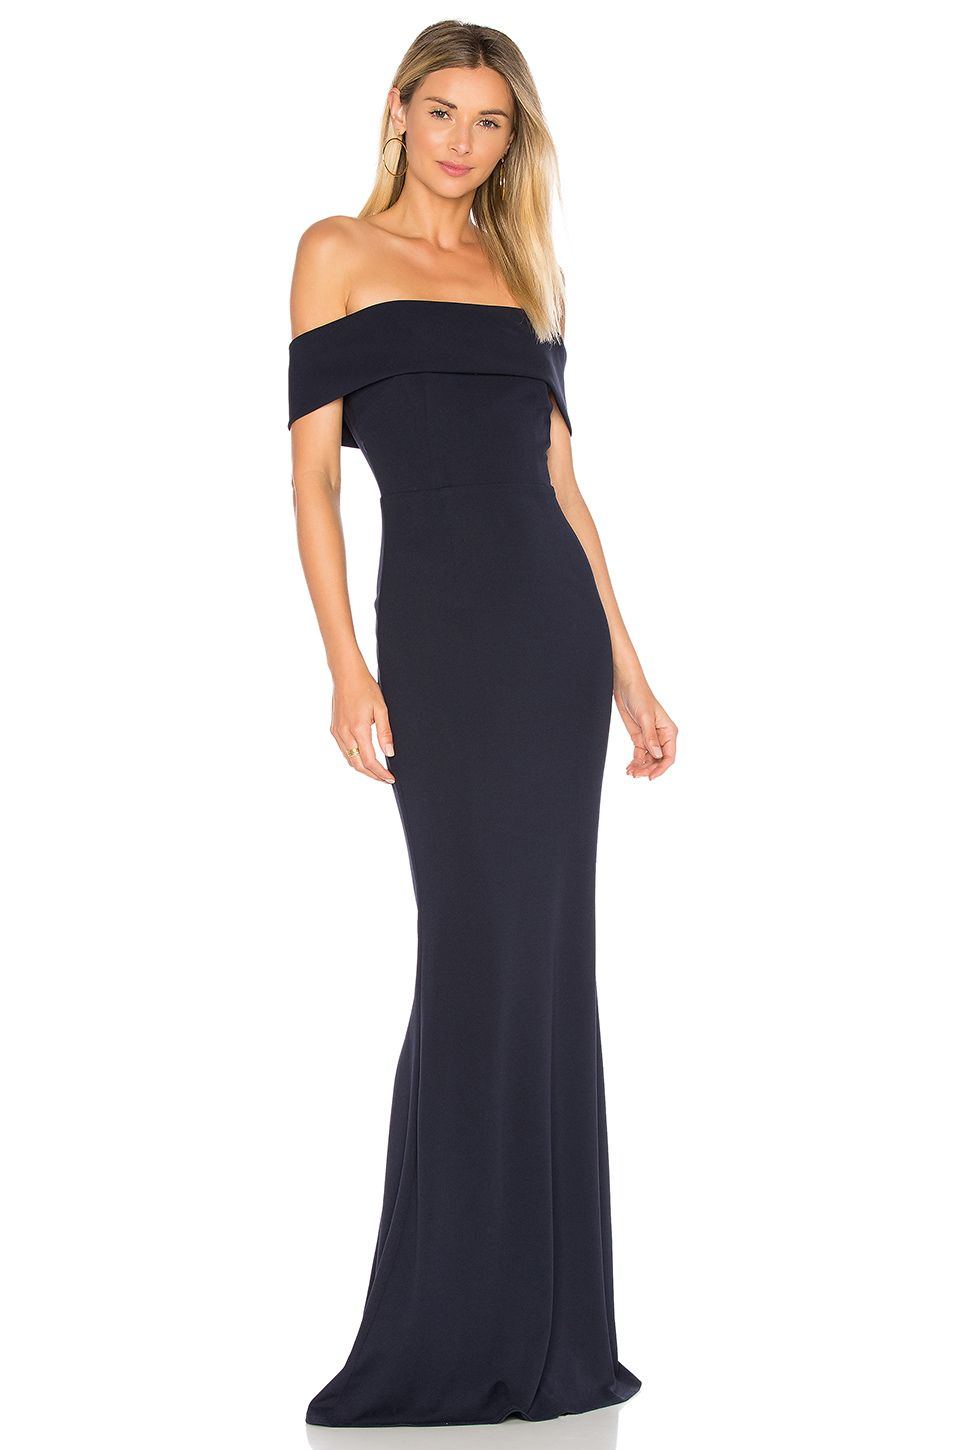 be527ed5821 Katie May Legacy Gown in Navy - - Shop this look at your local Bella  Bridesmaids